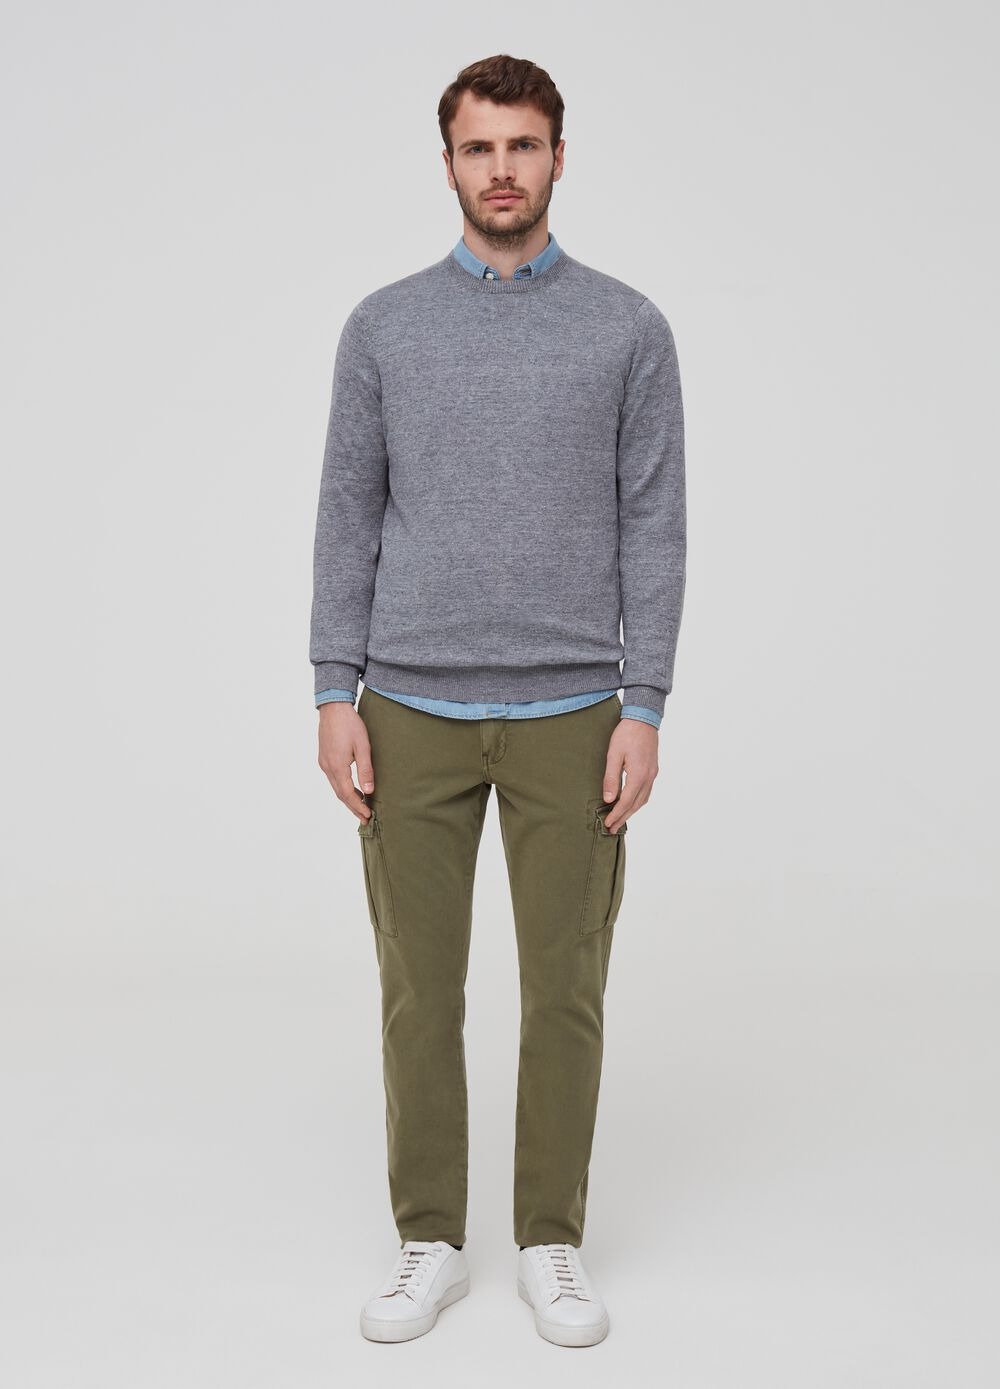 100% linen knitted pullover